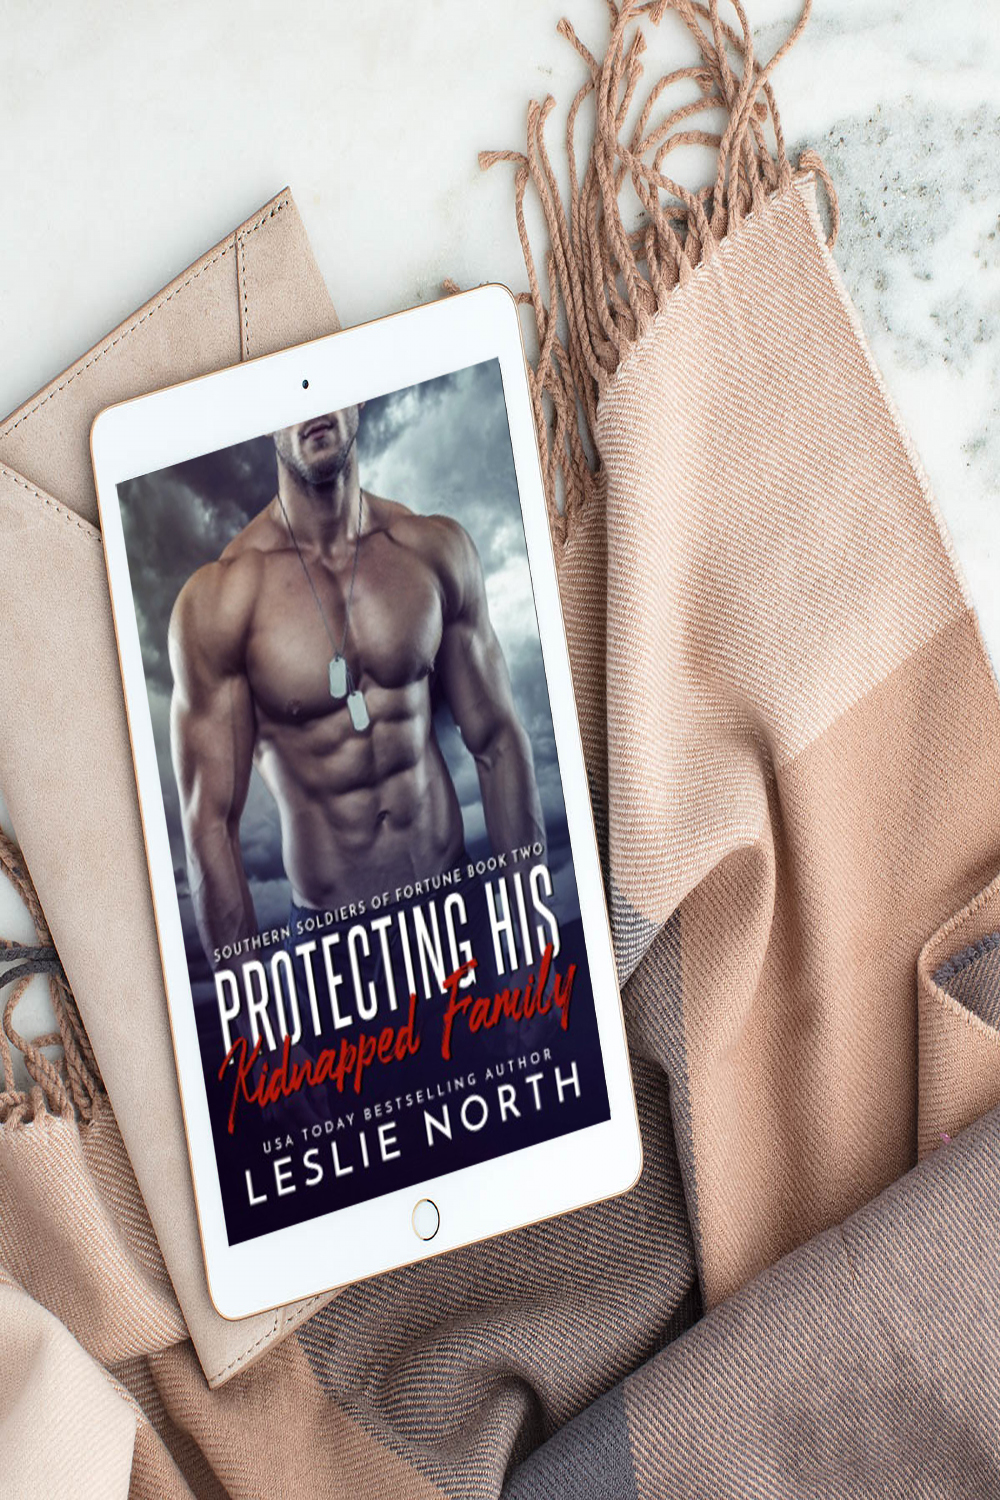 Protecting His Kidnapped Family by Leslie North